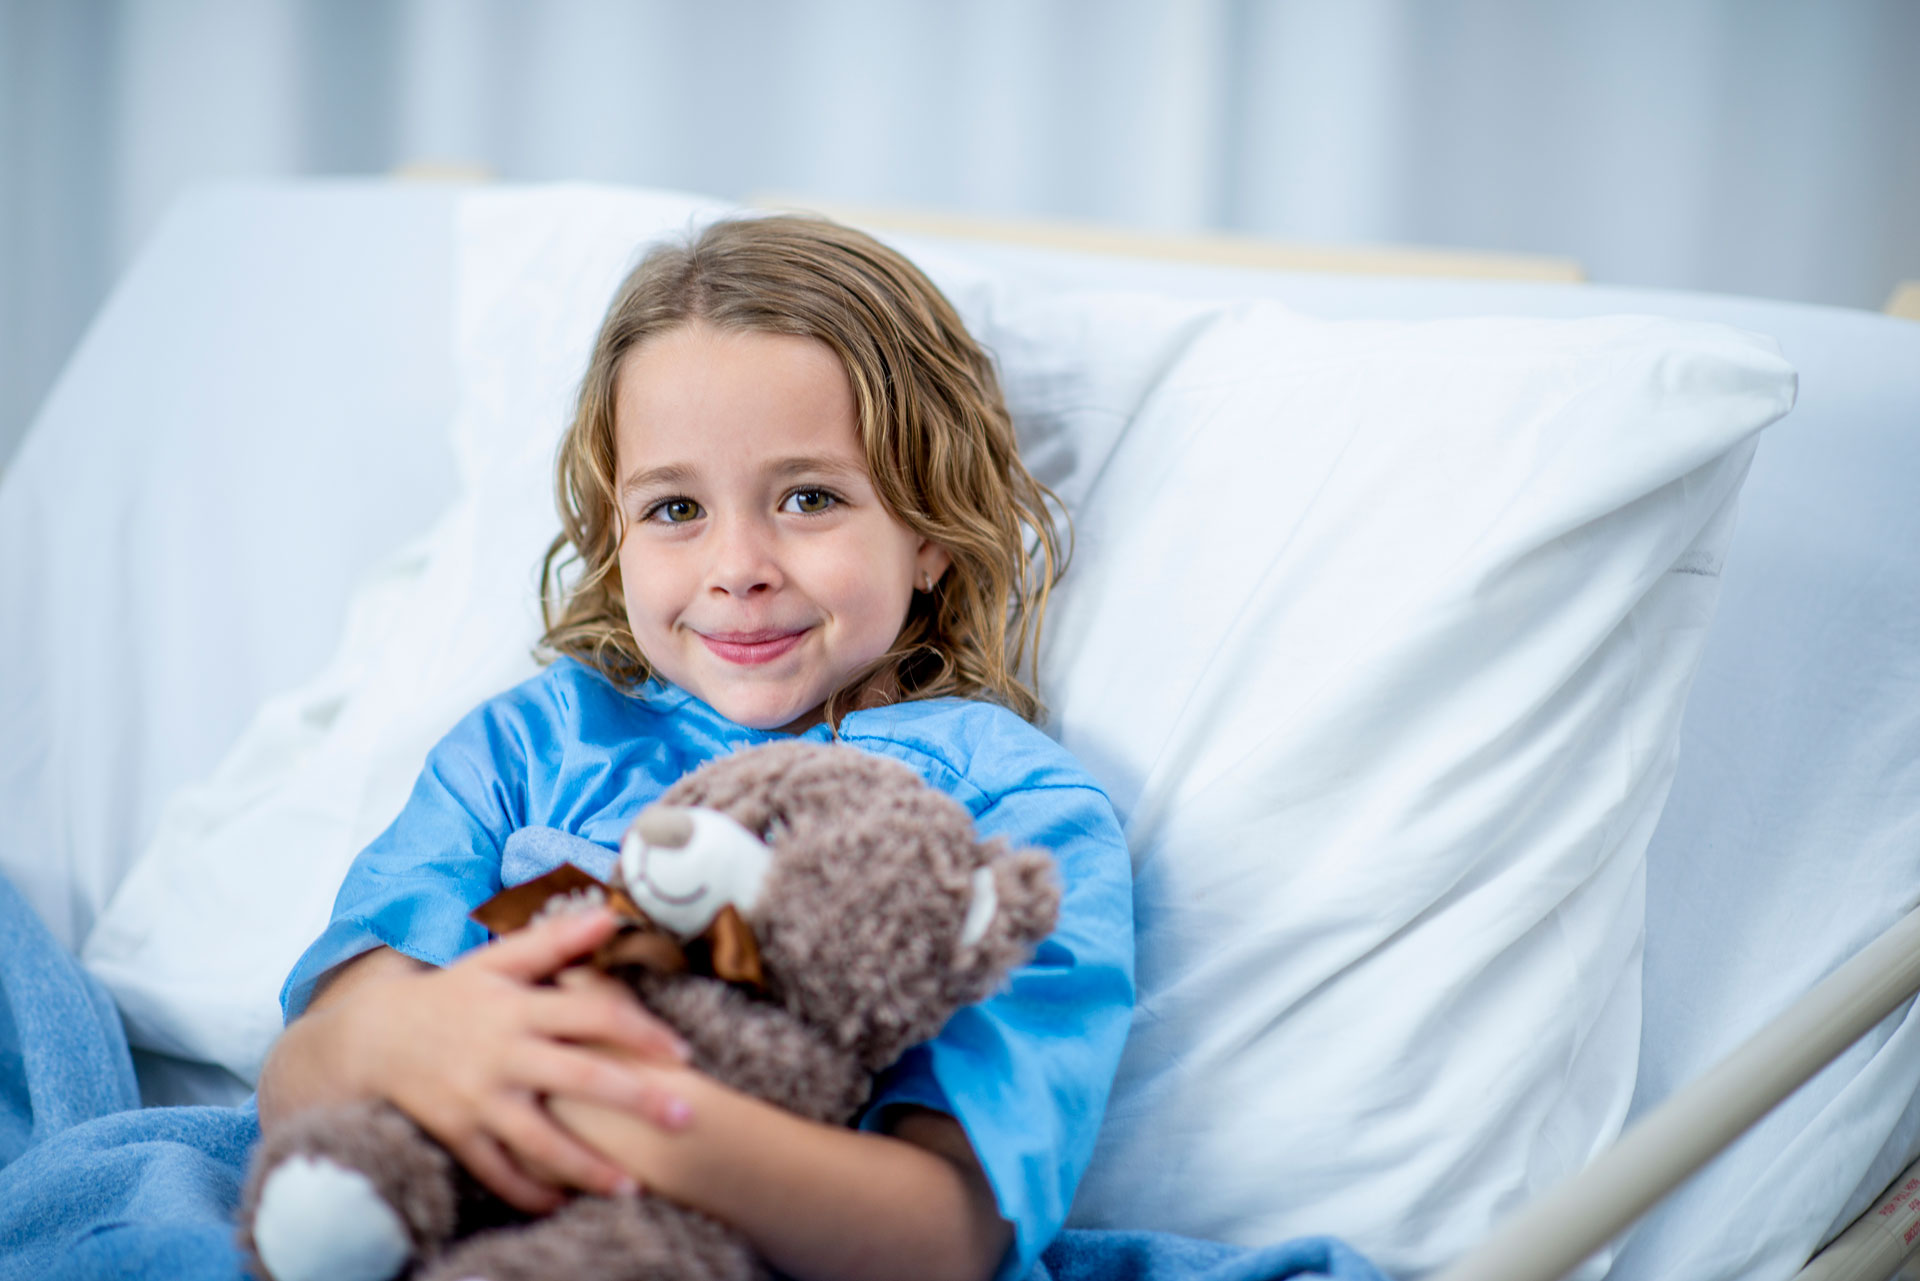 Young girl with teddy bear in hospital